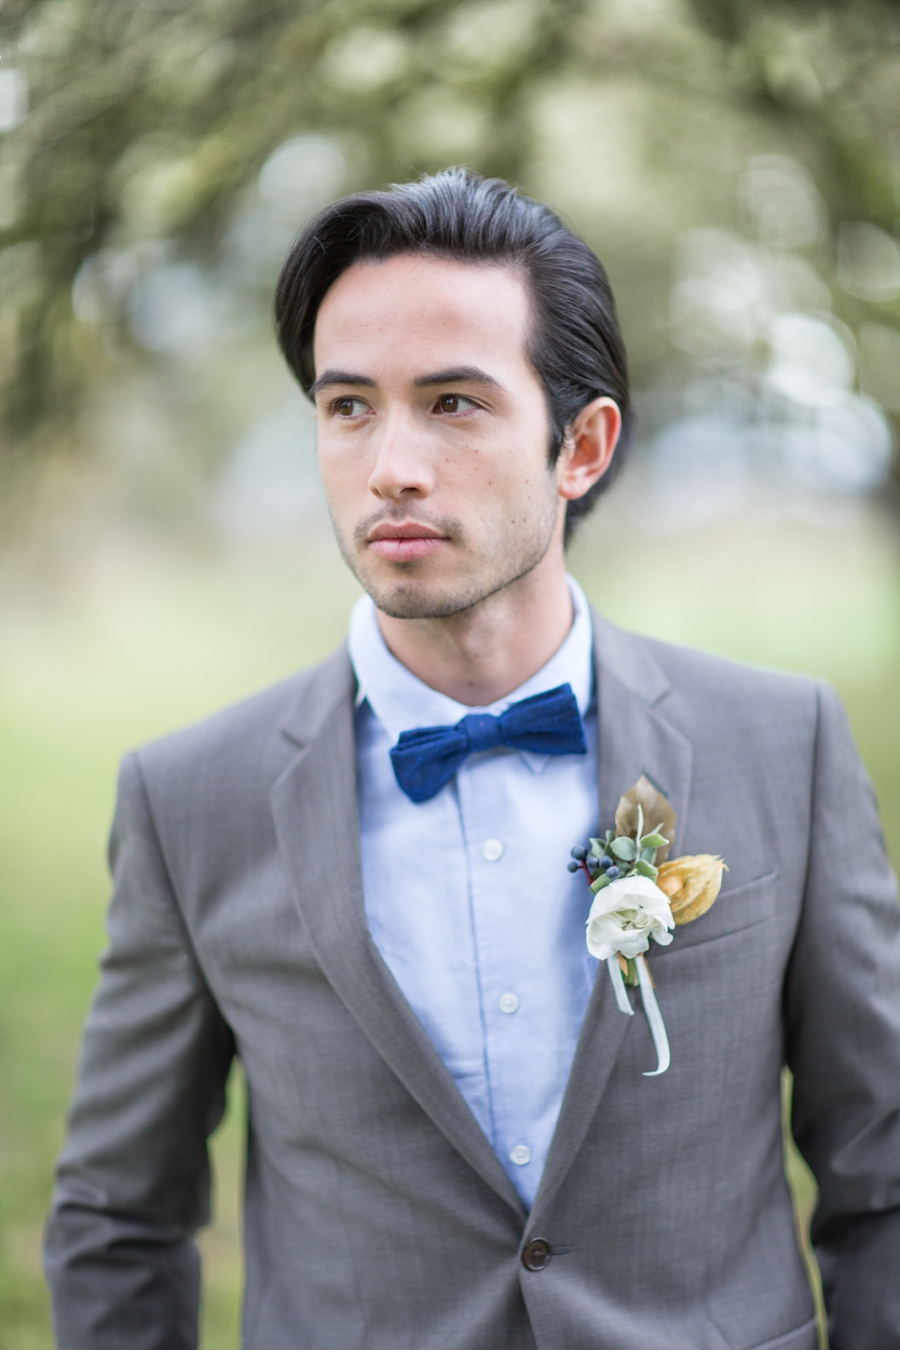 Groom-Style-Wedding-Attire